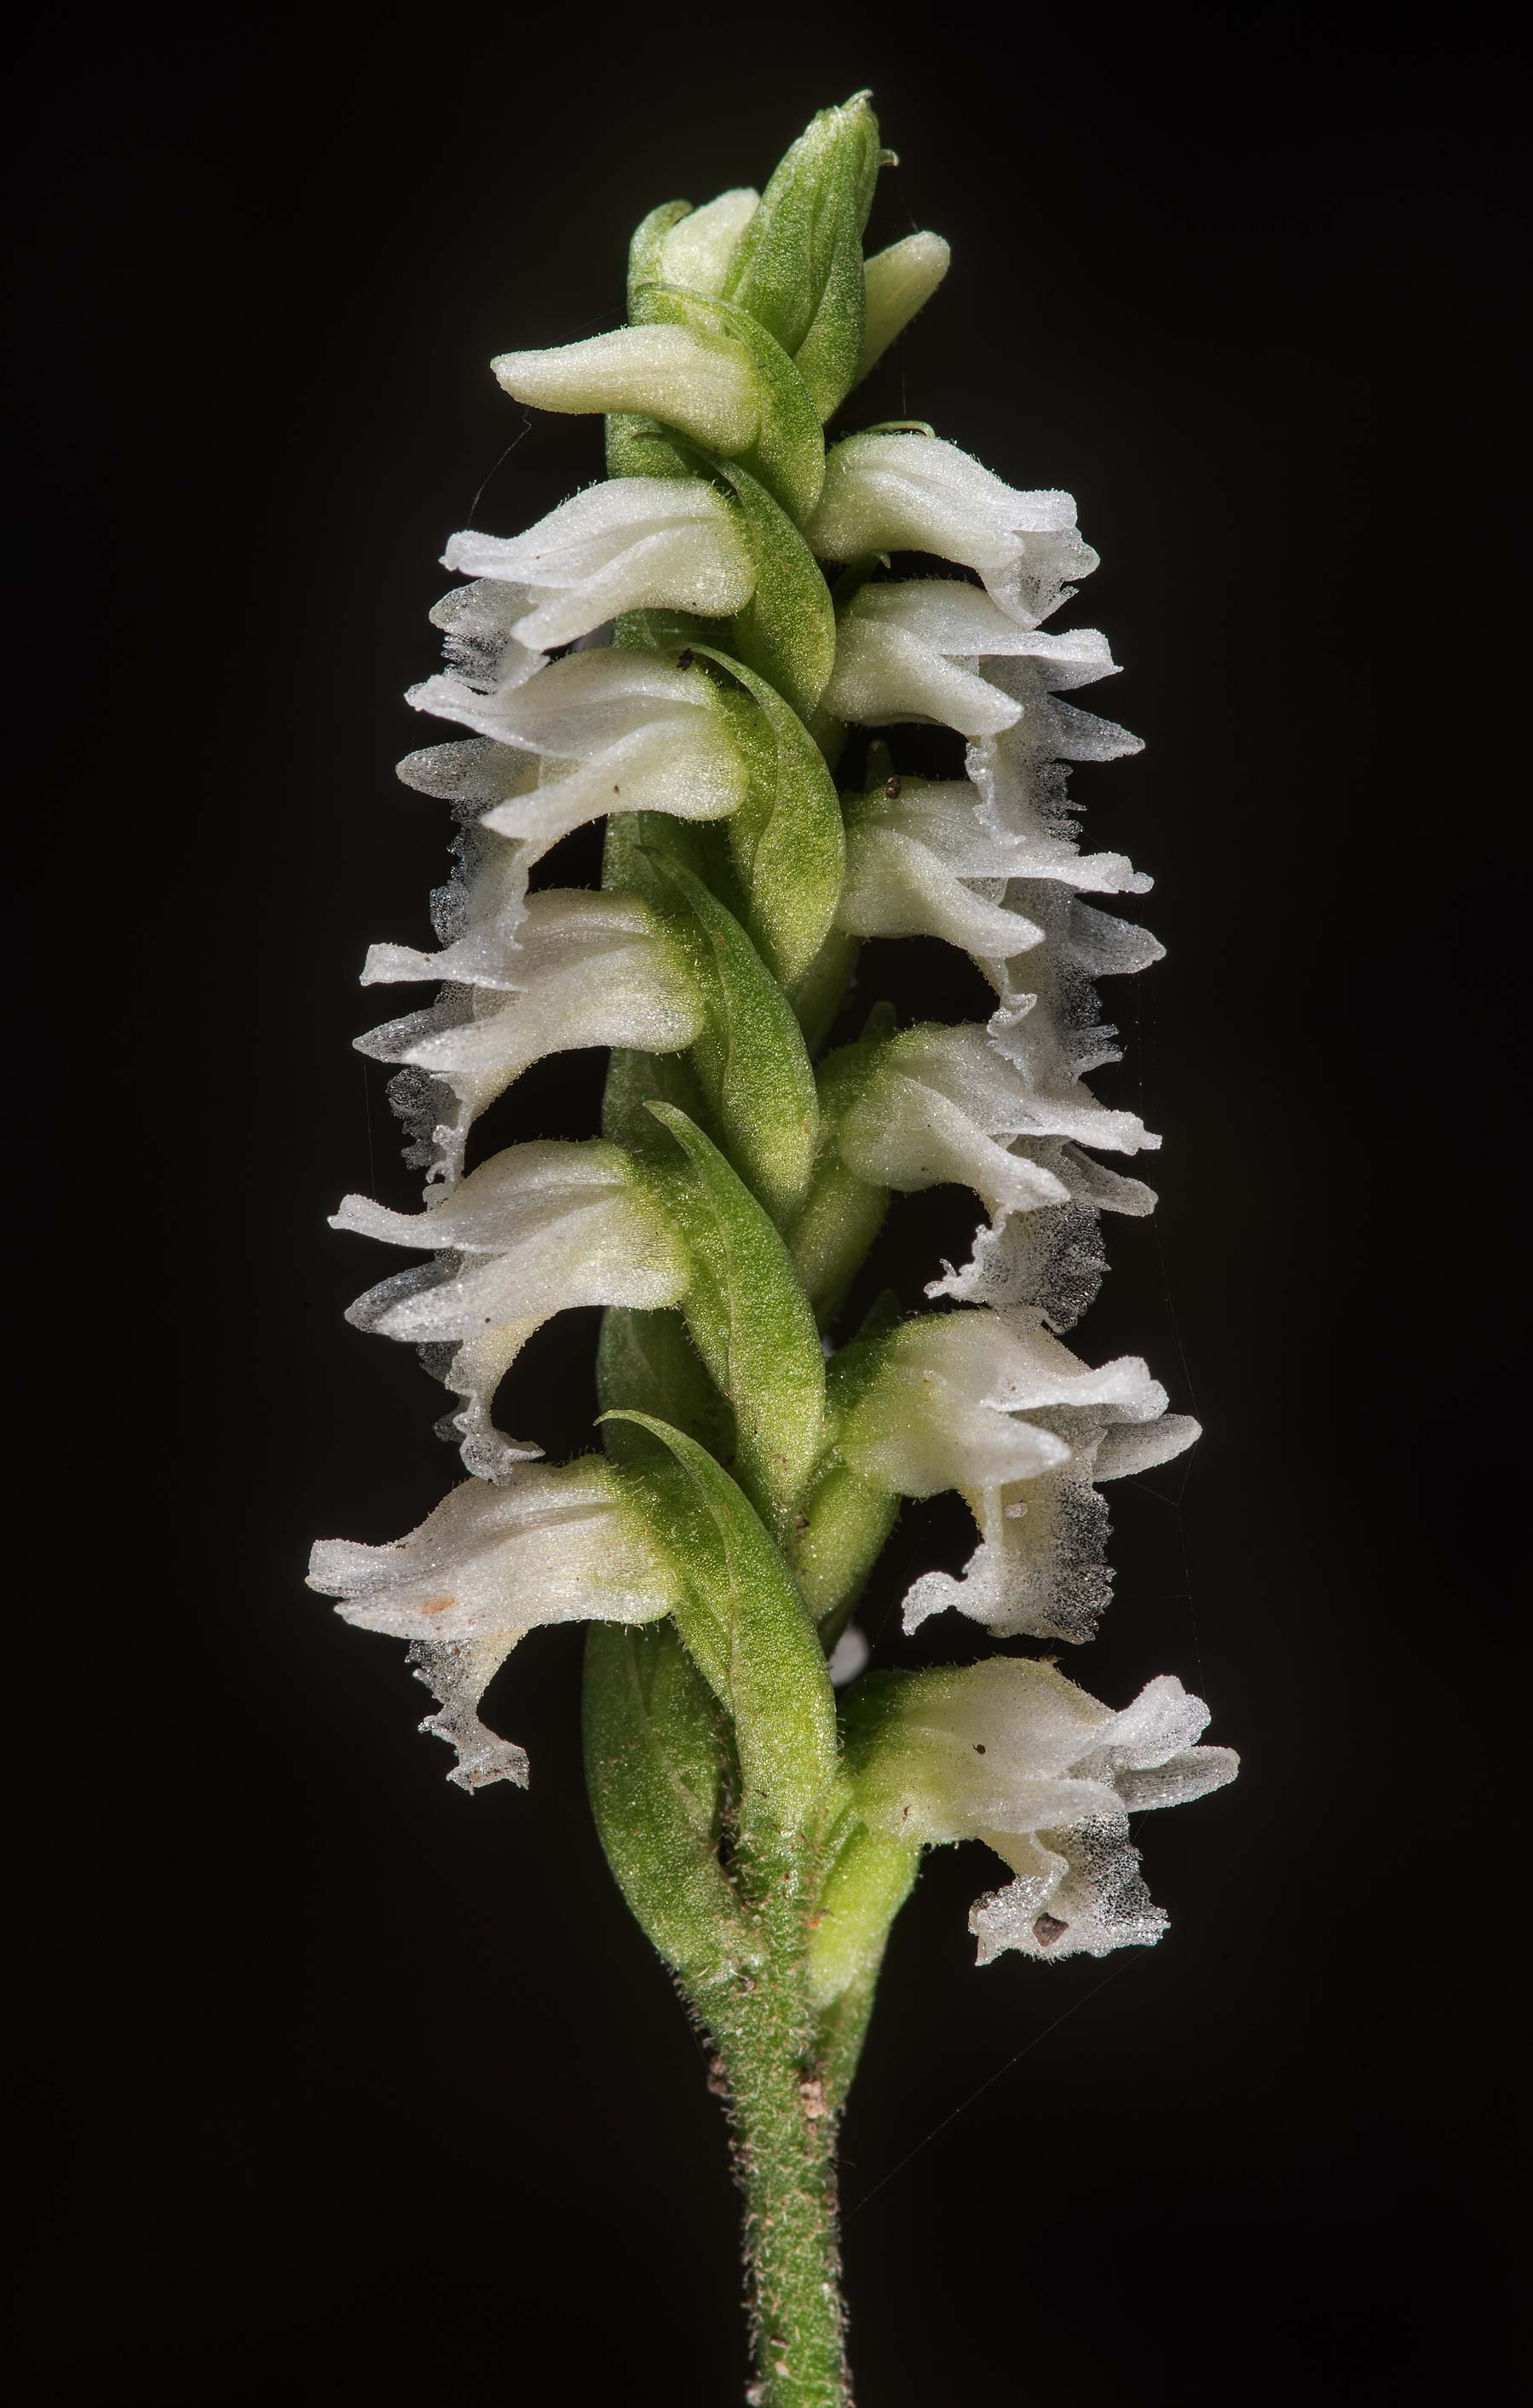 Flowers of ladies' tresses (Spiranthes ovalis var...National Forest. Cleveland, Texas